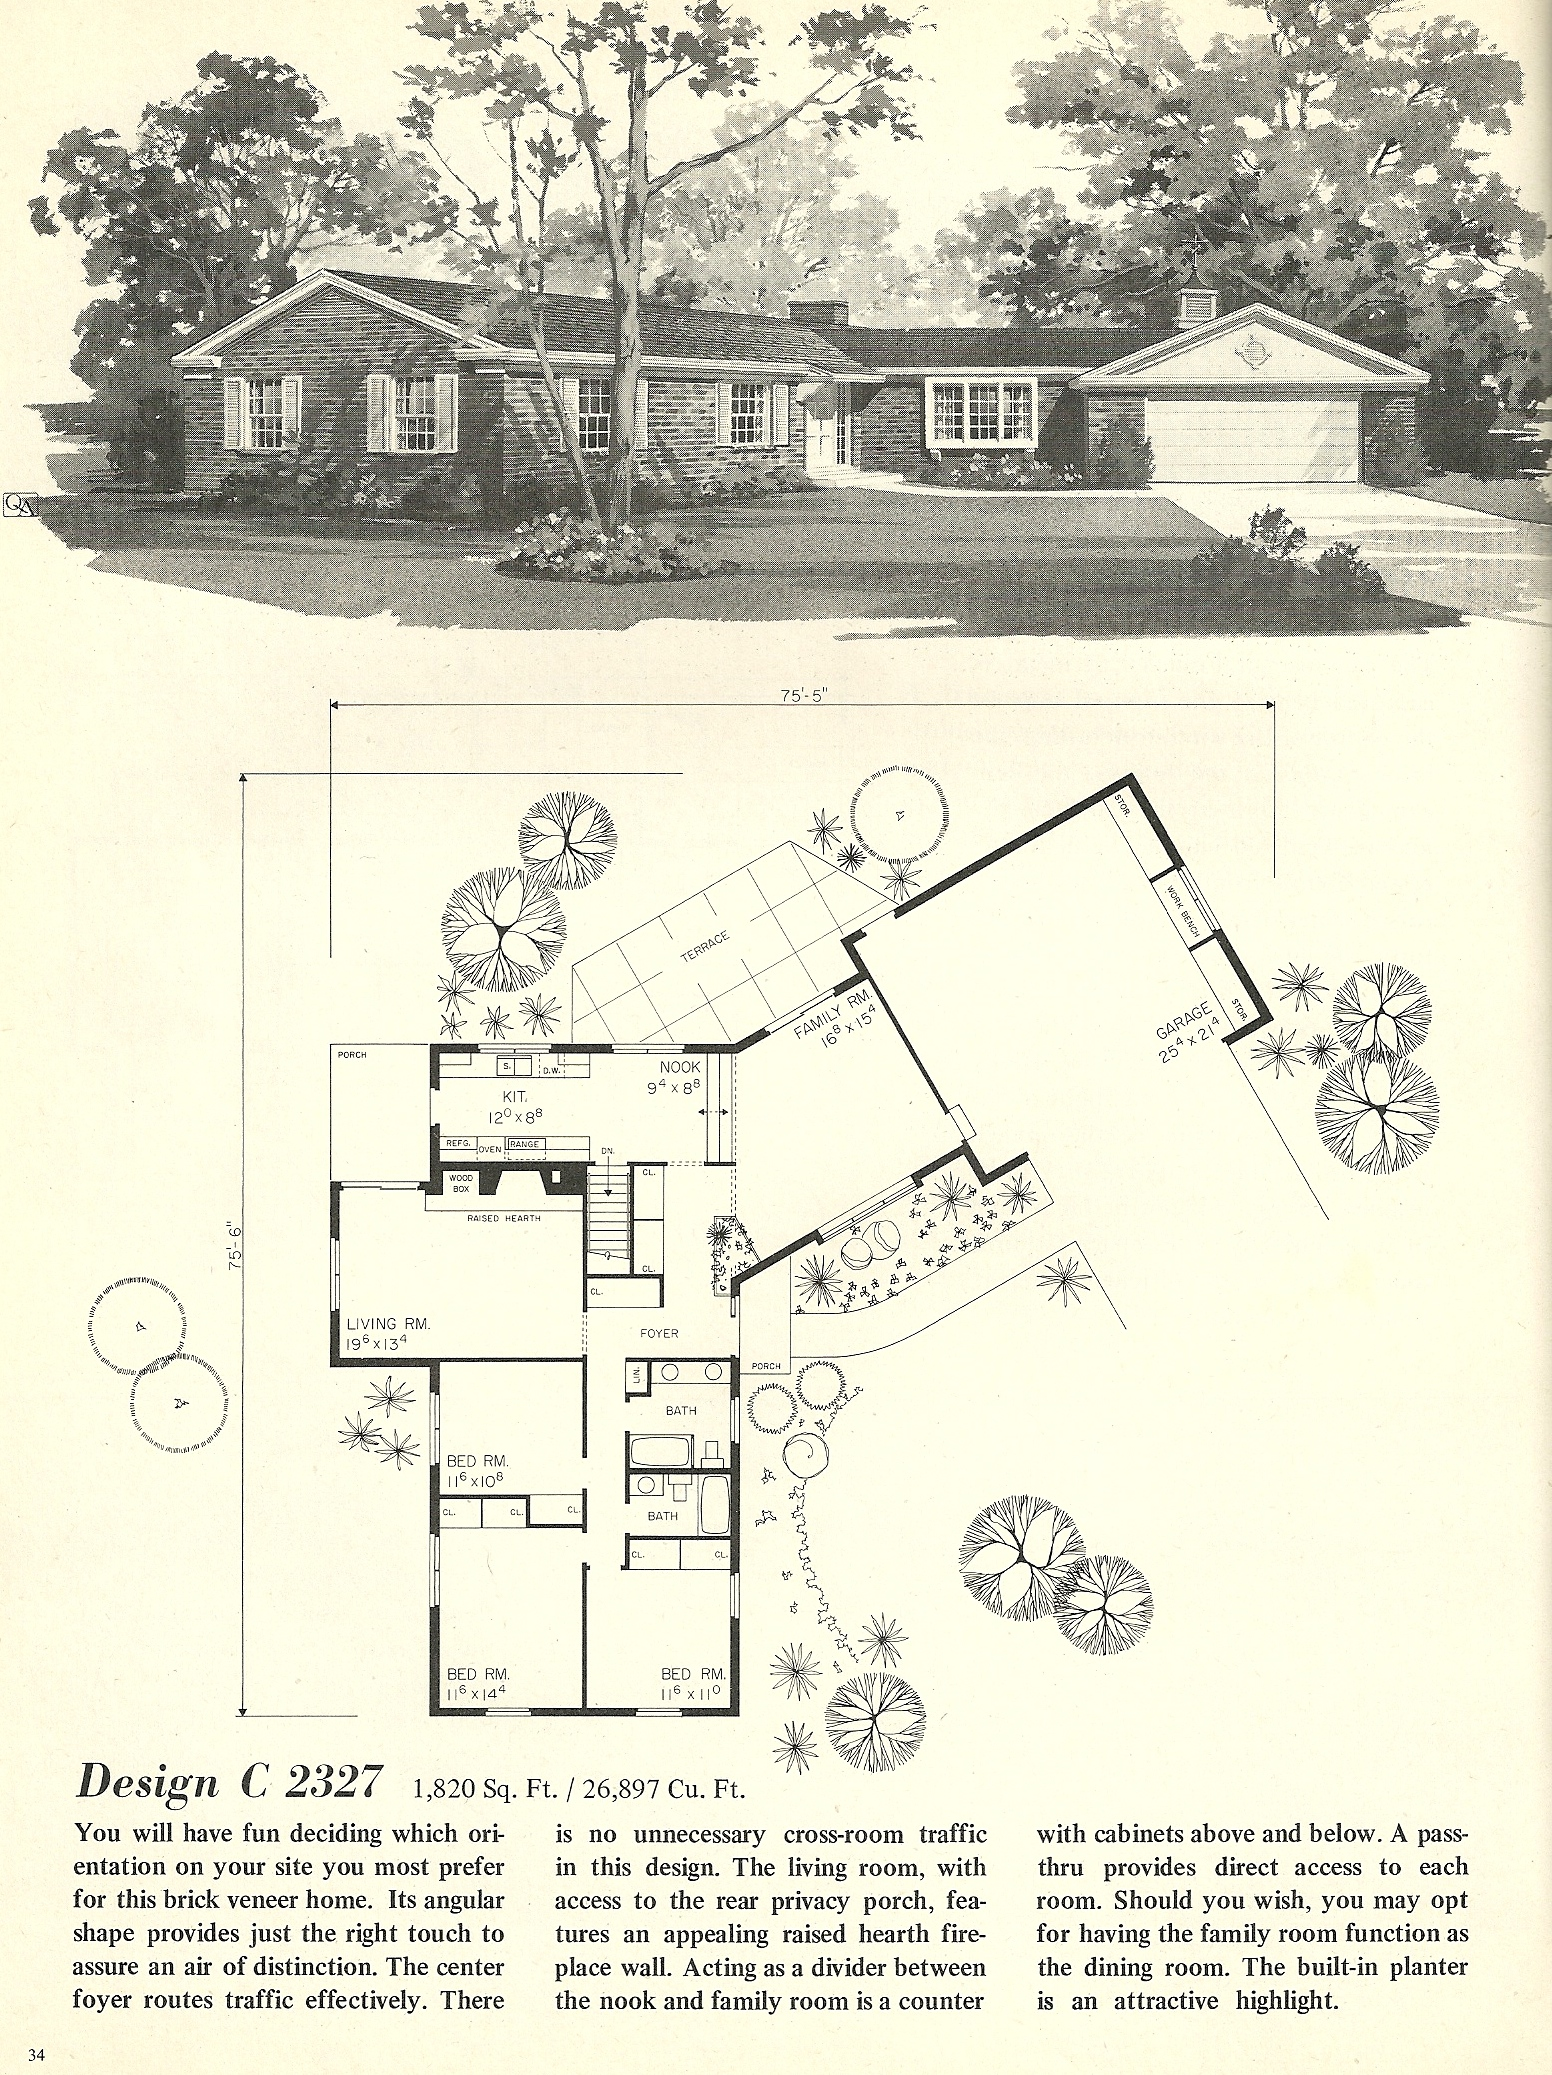 Vintage house plans 2327 antique alter ego for 1960 ranch house plans